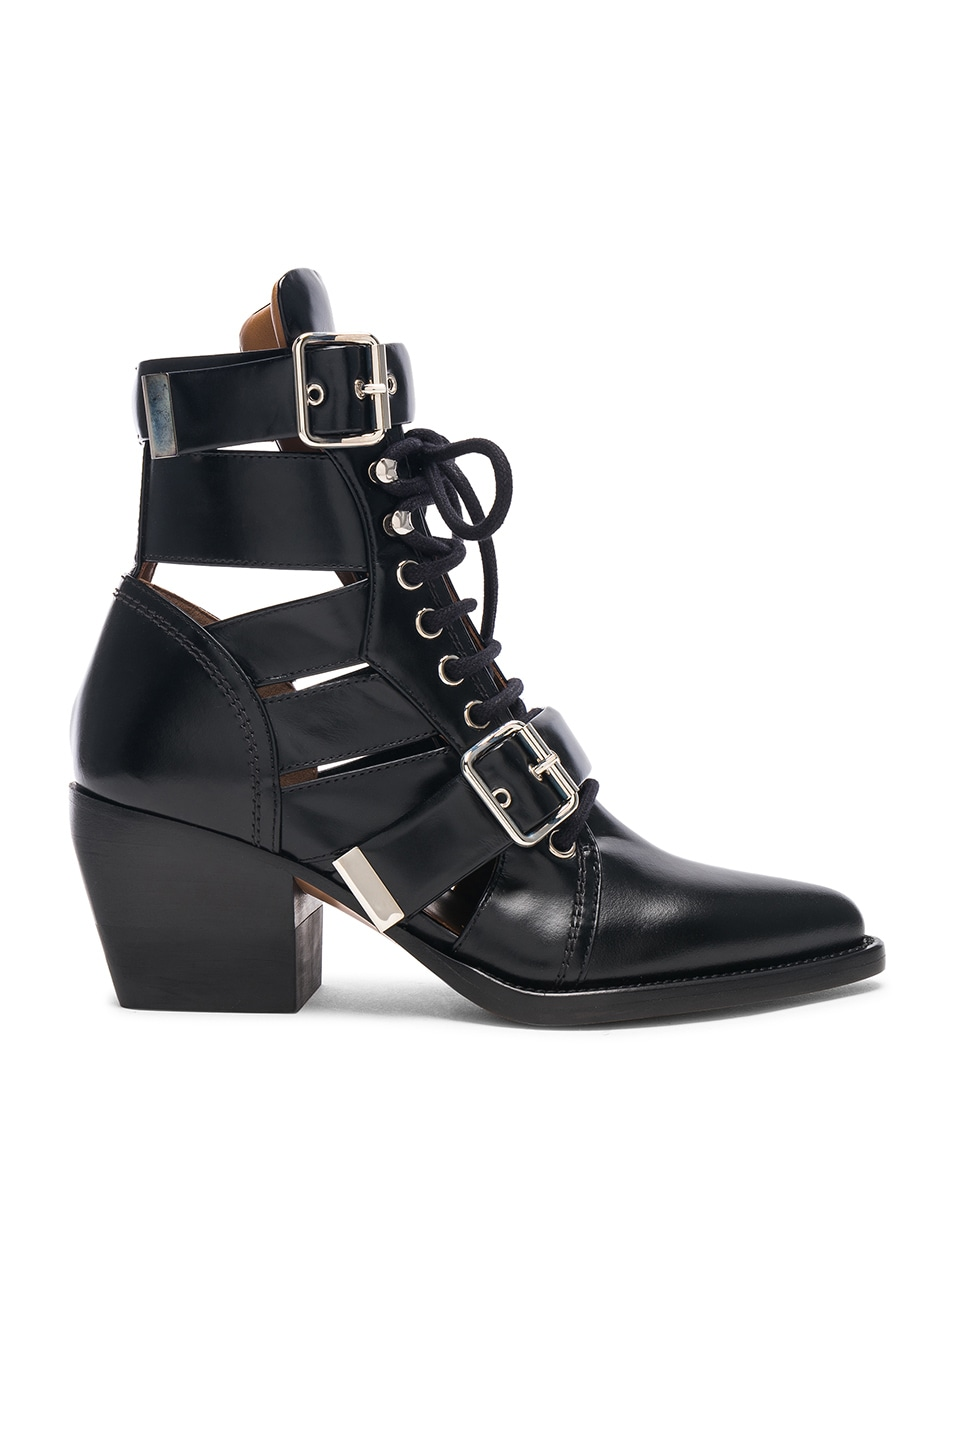 Image 1 of Chloe Rylee Leather Lace Up Buckle Boots in Black